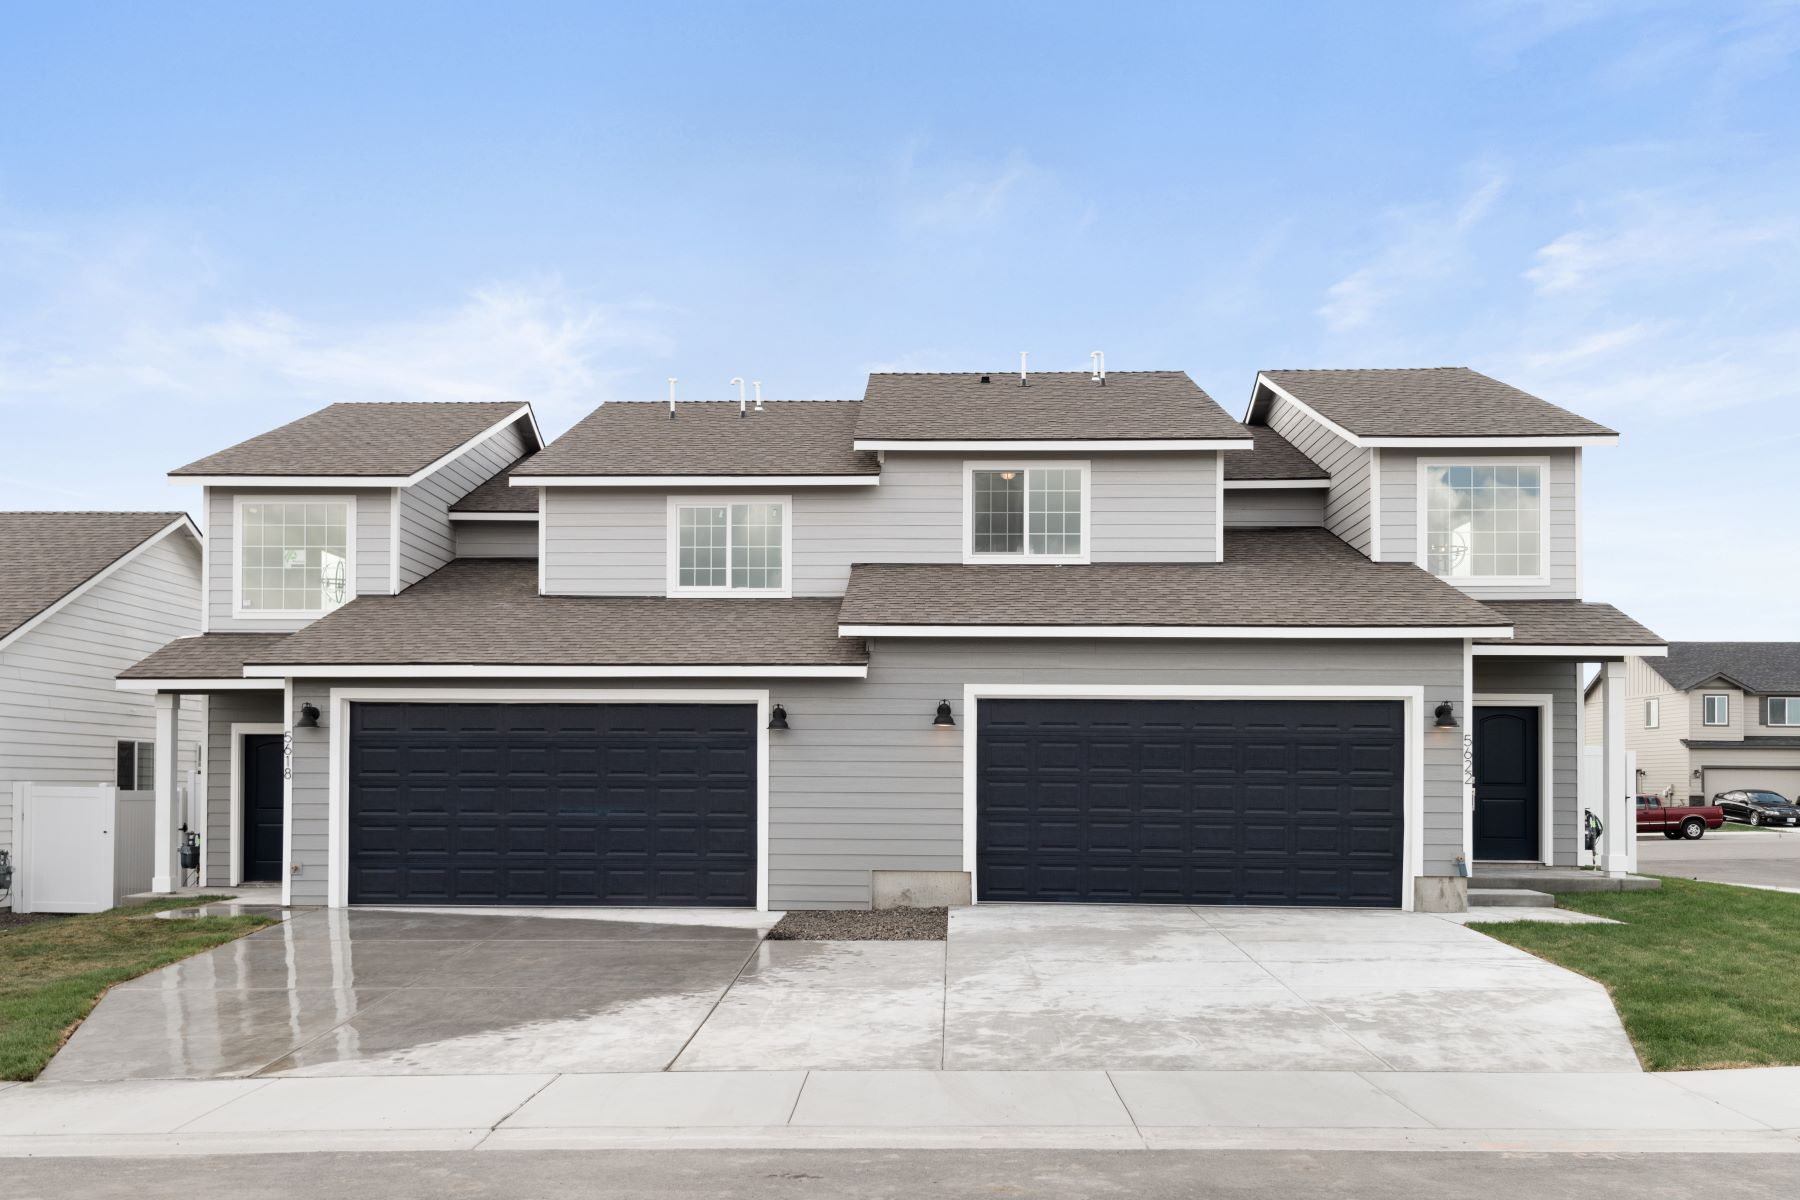 Single Family Homes for Sale at Large Cul-de-Sac Location 5218 Remington Drive Pasco, Washington 99301 United States